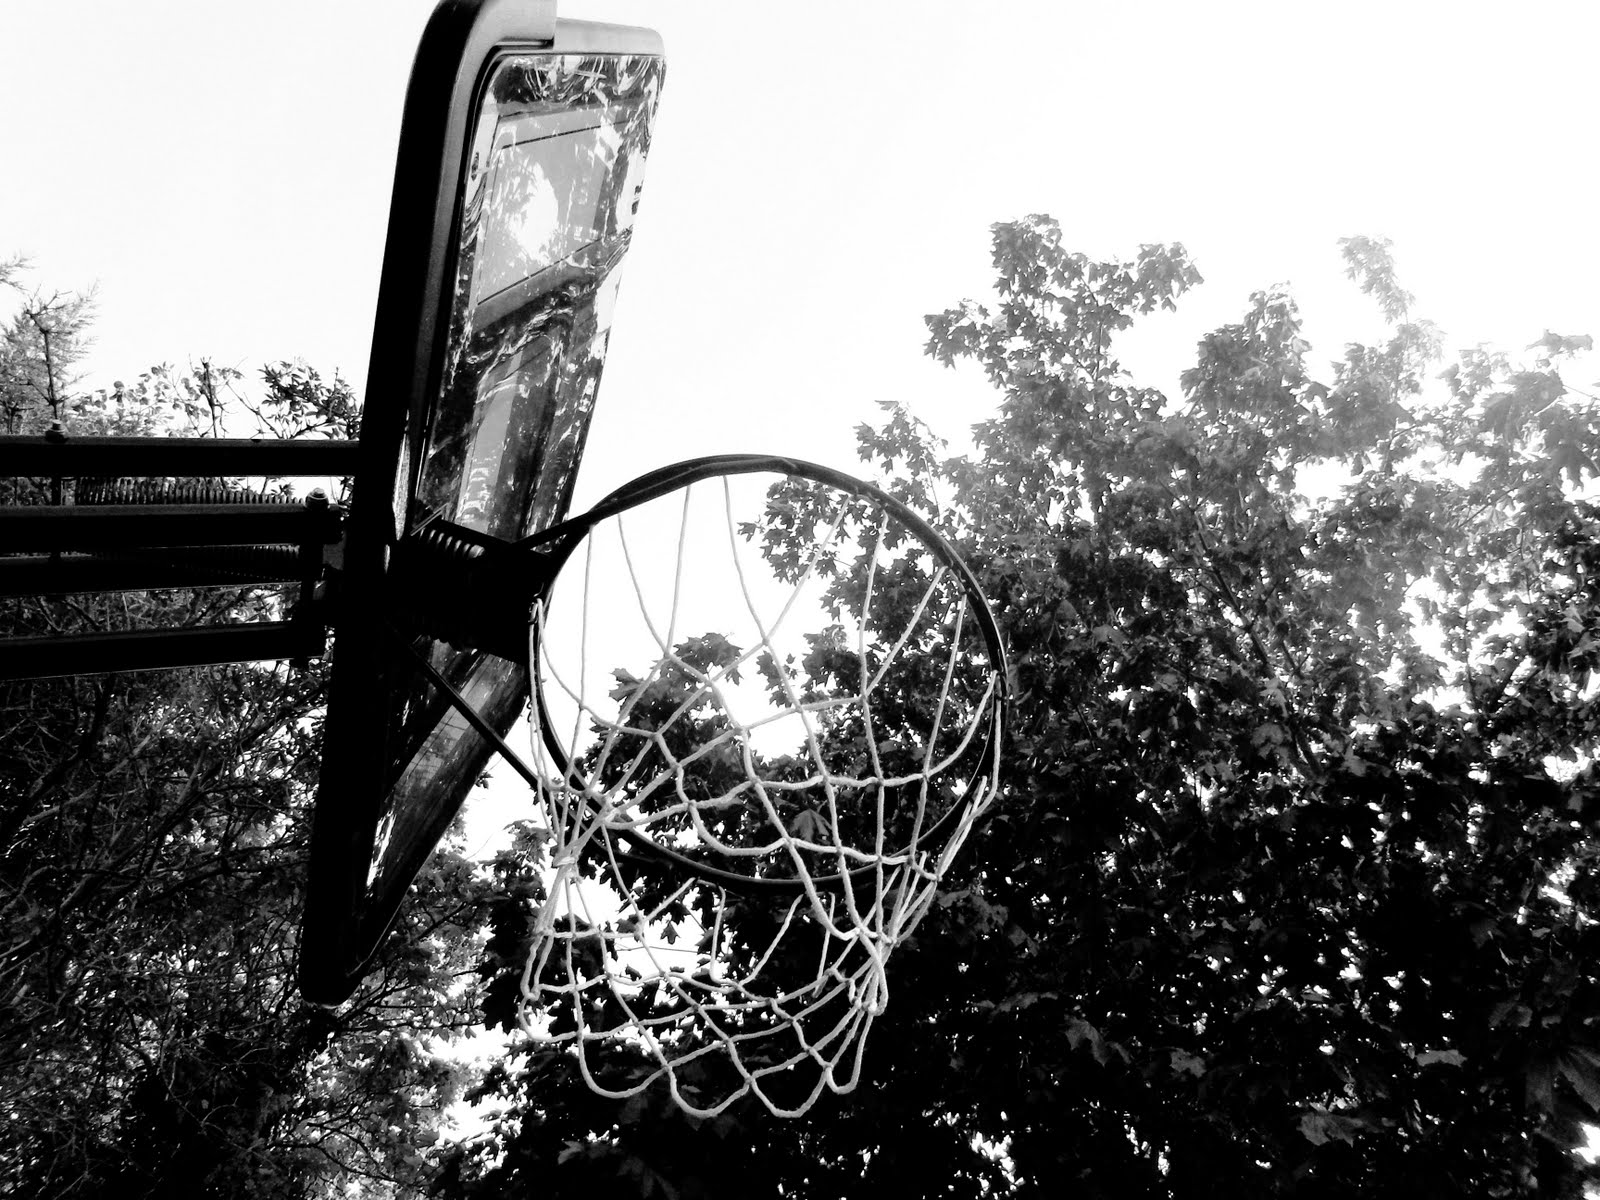 Basketball is a sport that ive always really enjoyed so i have a basketball hoop in my back garden the hoop is black and white already so it seemed only